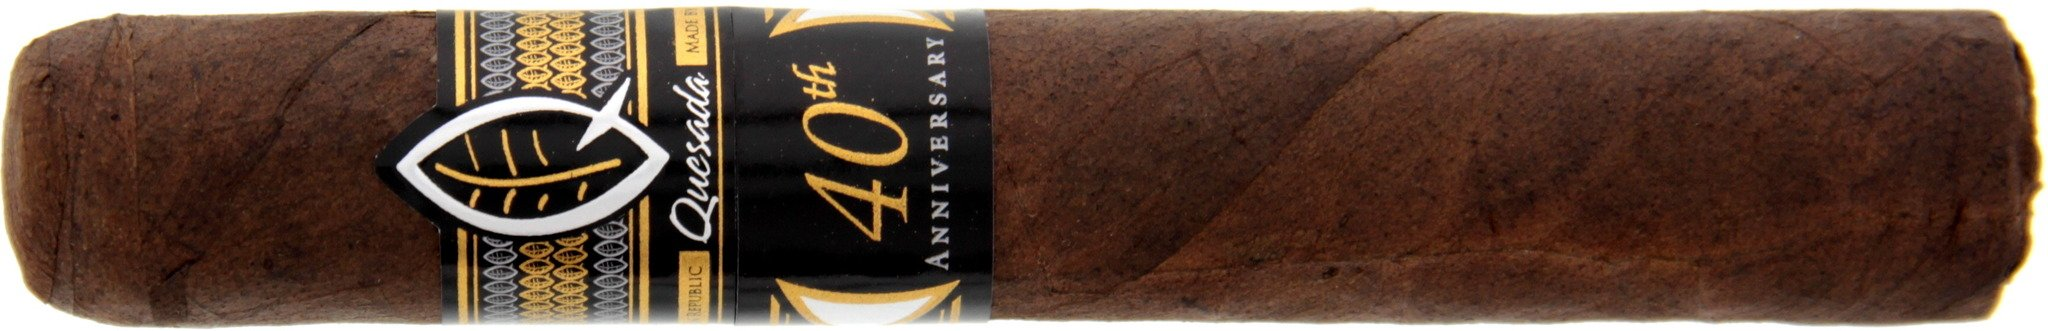 Quesada 40th Anniversary Robusto